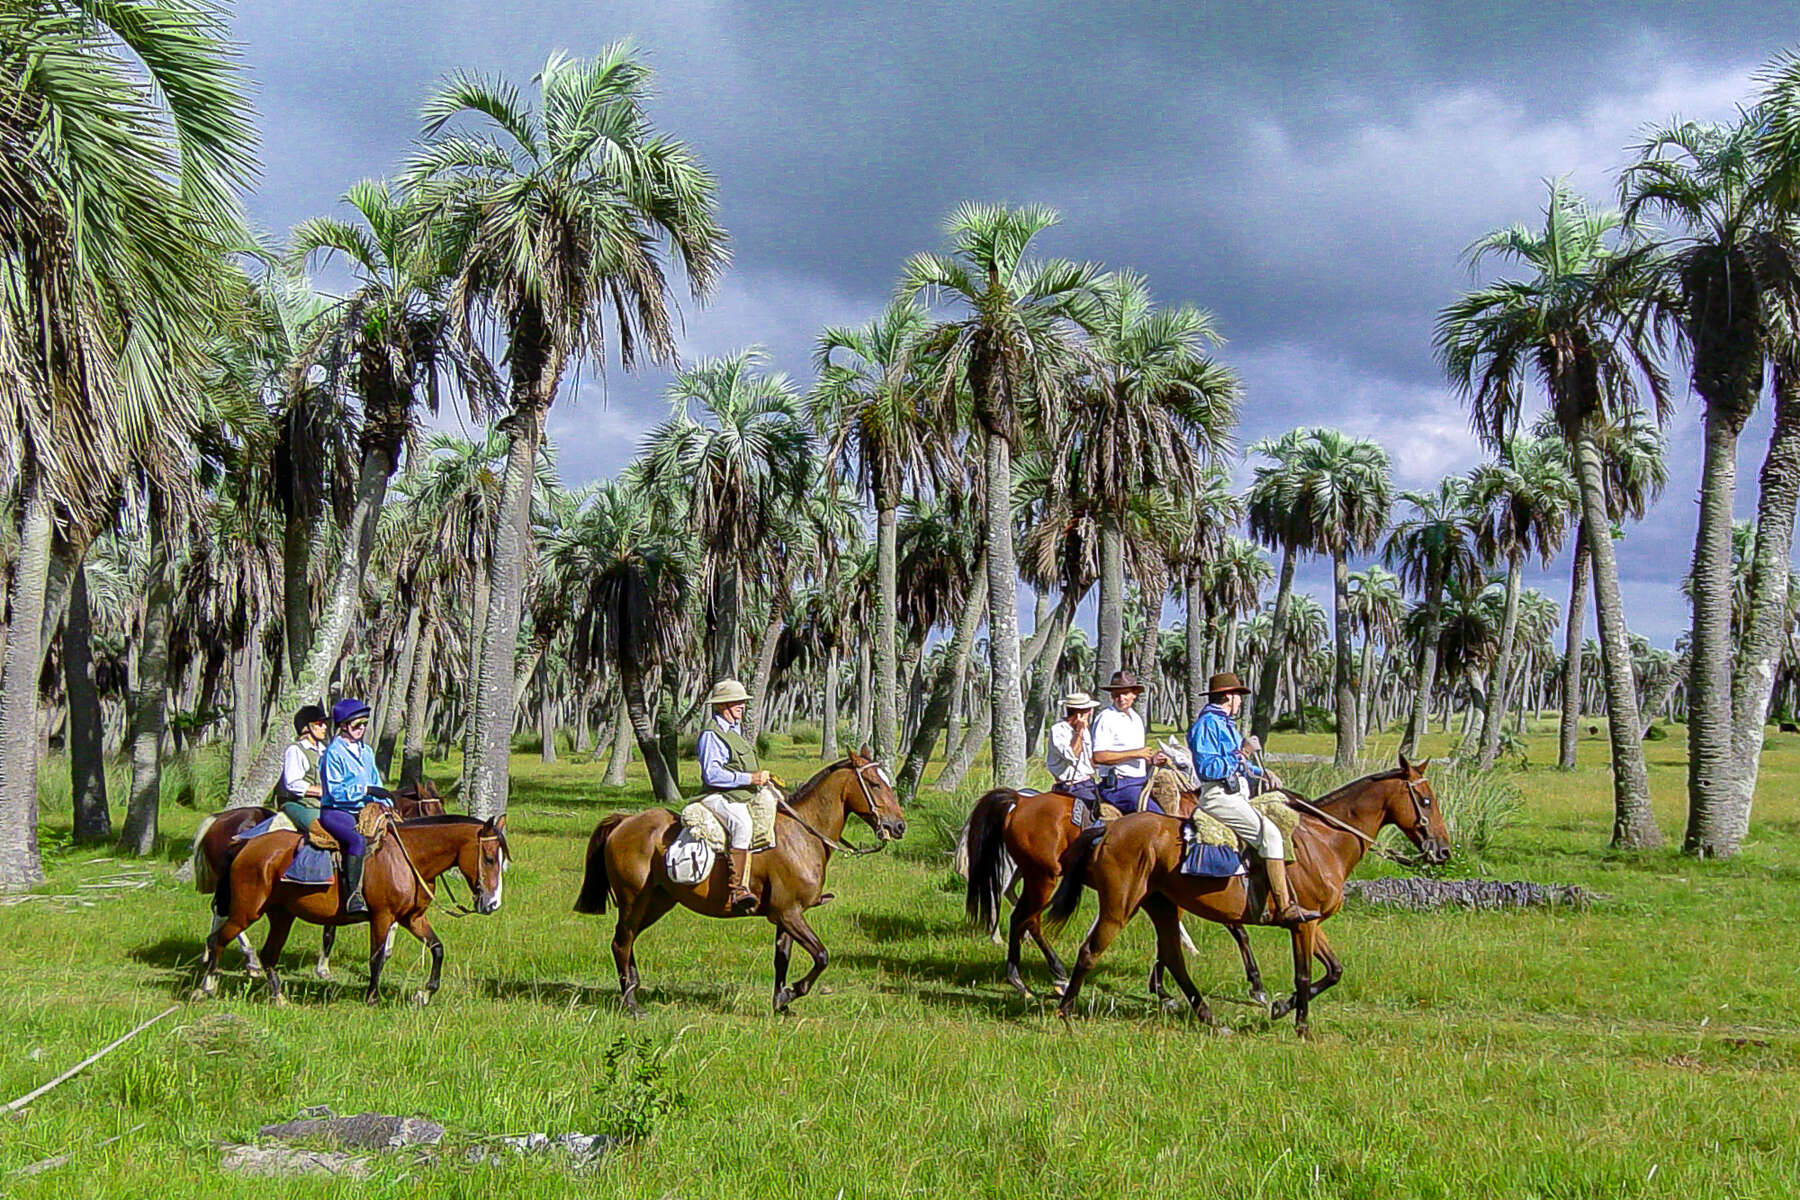 Trail riding on Criollo horses in Uruguay